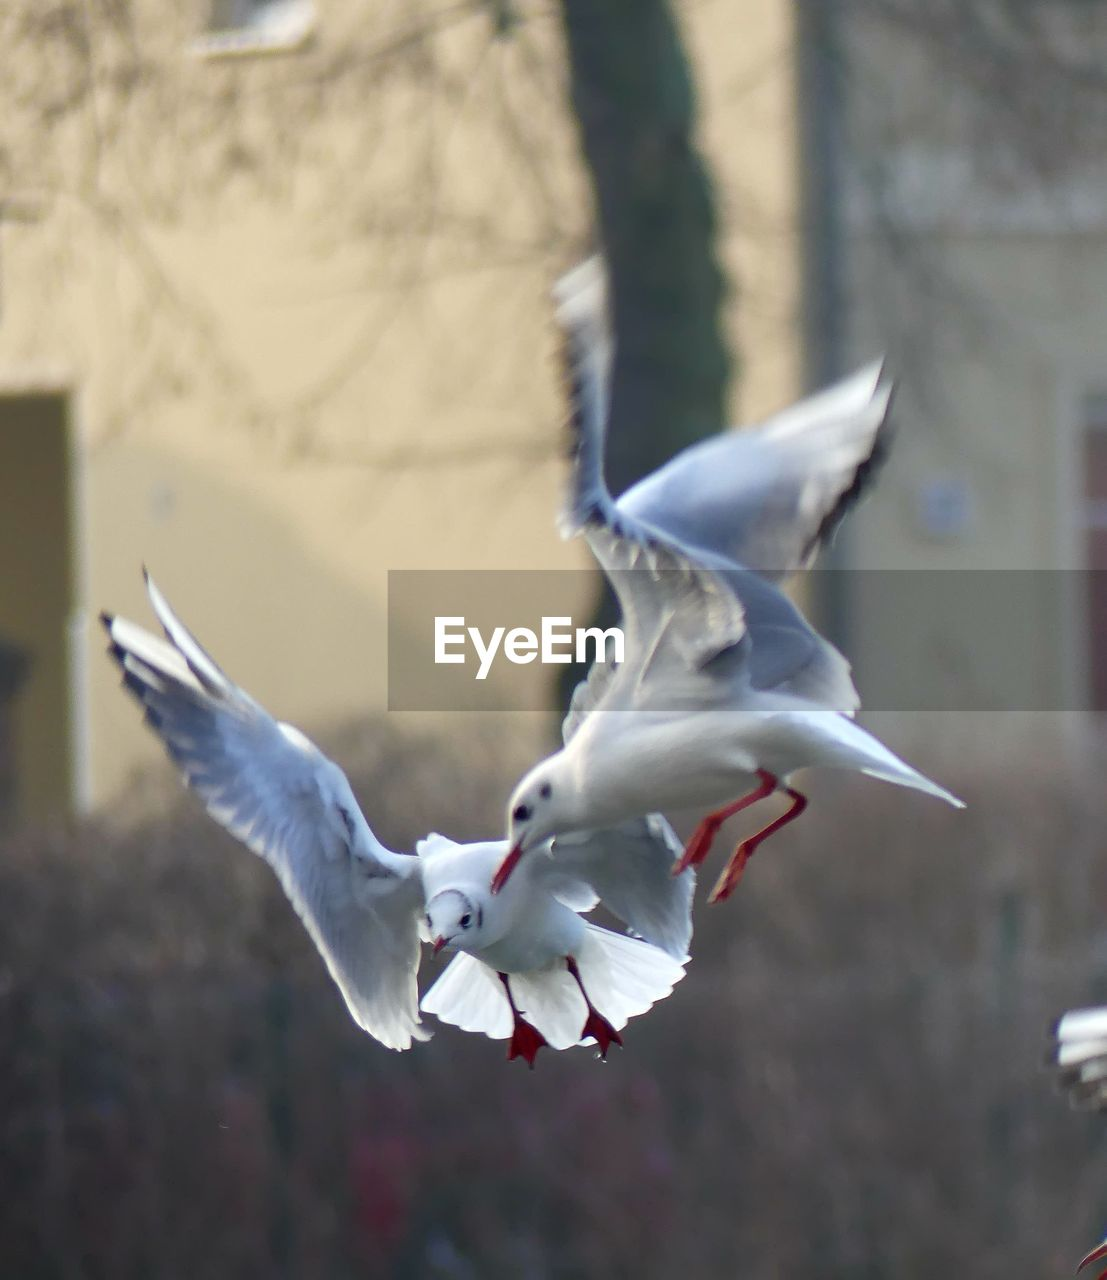 flying, bird, animal themes, vertebrate, spread wings, animal, white color, no people, animals in the wild, mid-air, beauty in nature, day, focus on foreground, animal wildlife, nature, flower, motion, close-up, flowering plant, outdoors, seagull